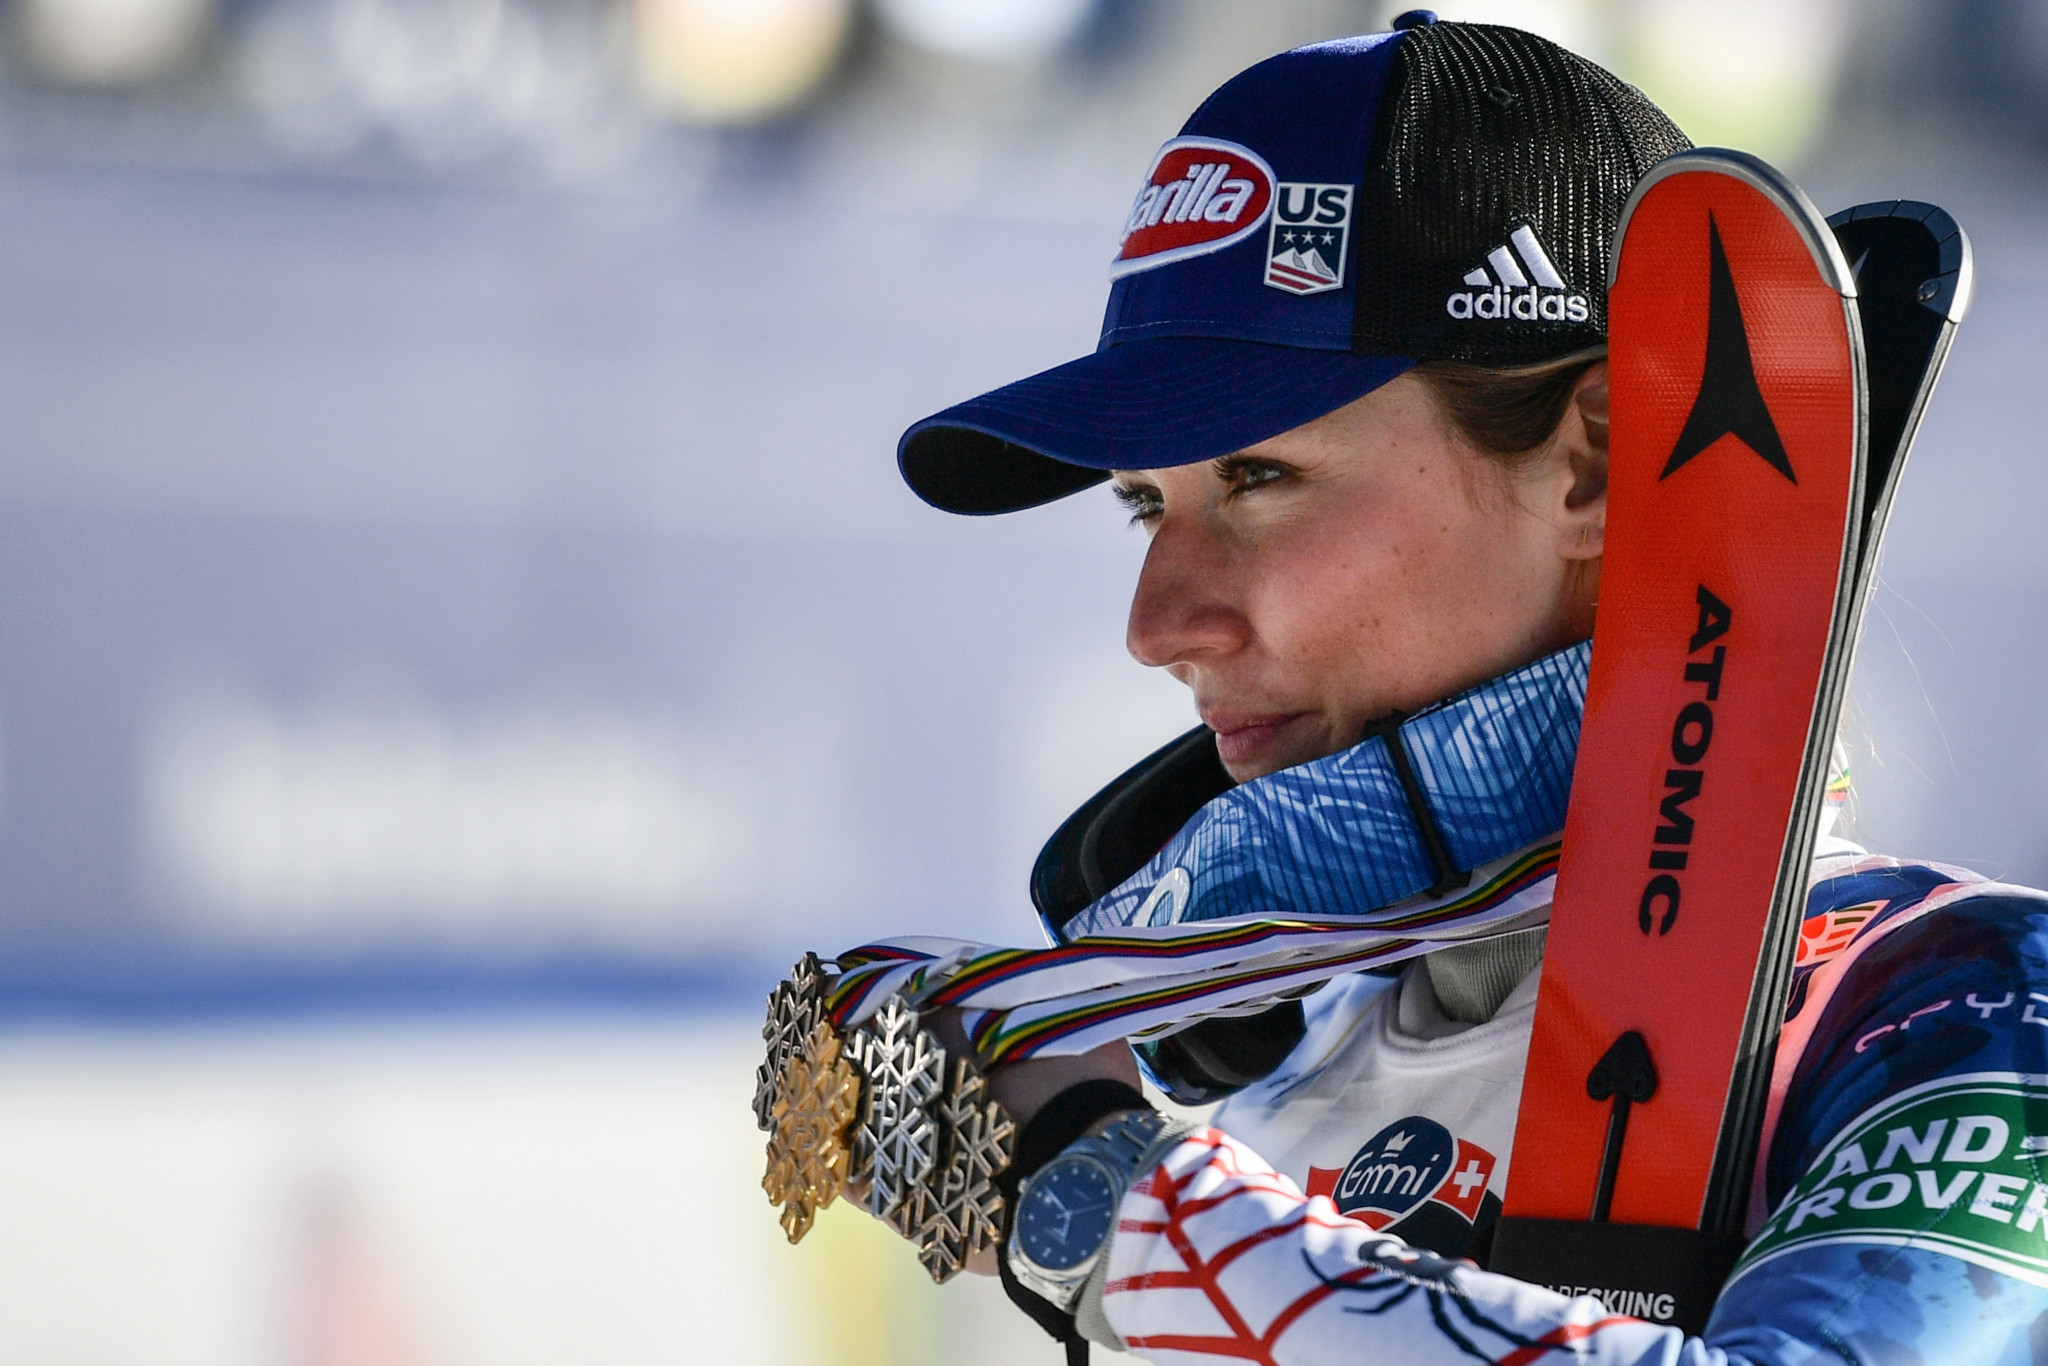 """Shiffrin calls for """"more consideration"""" when selecting Olympic hosts amid Beijing 2022 controversy"""